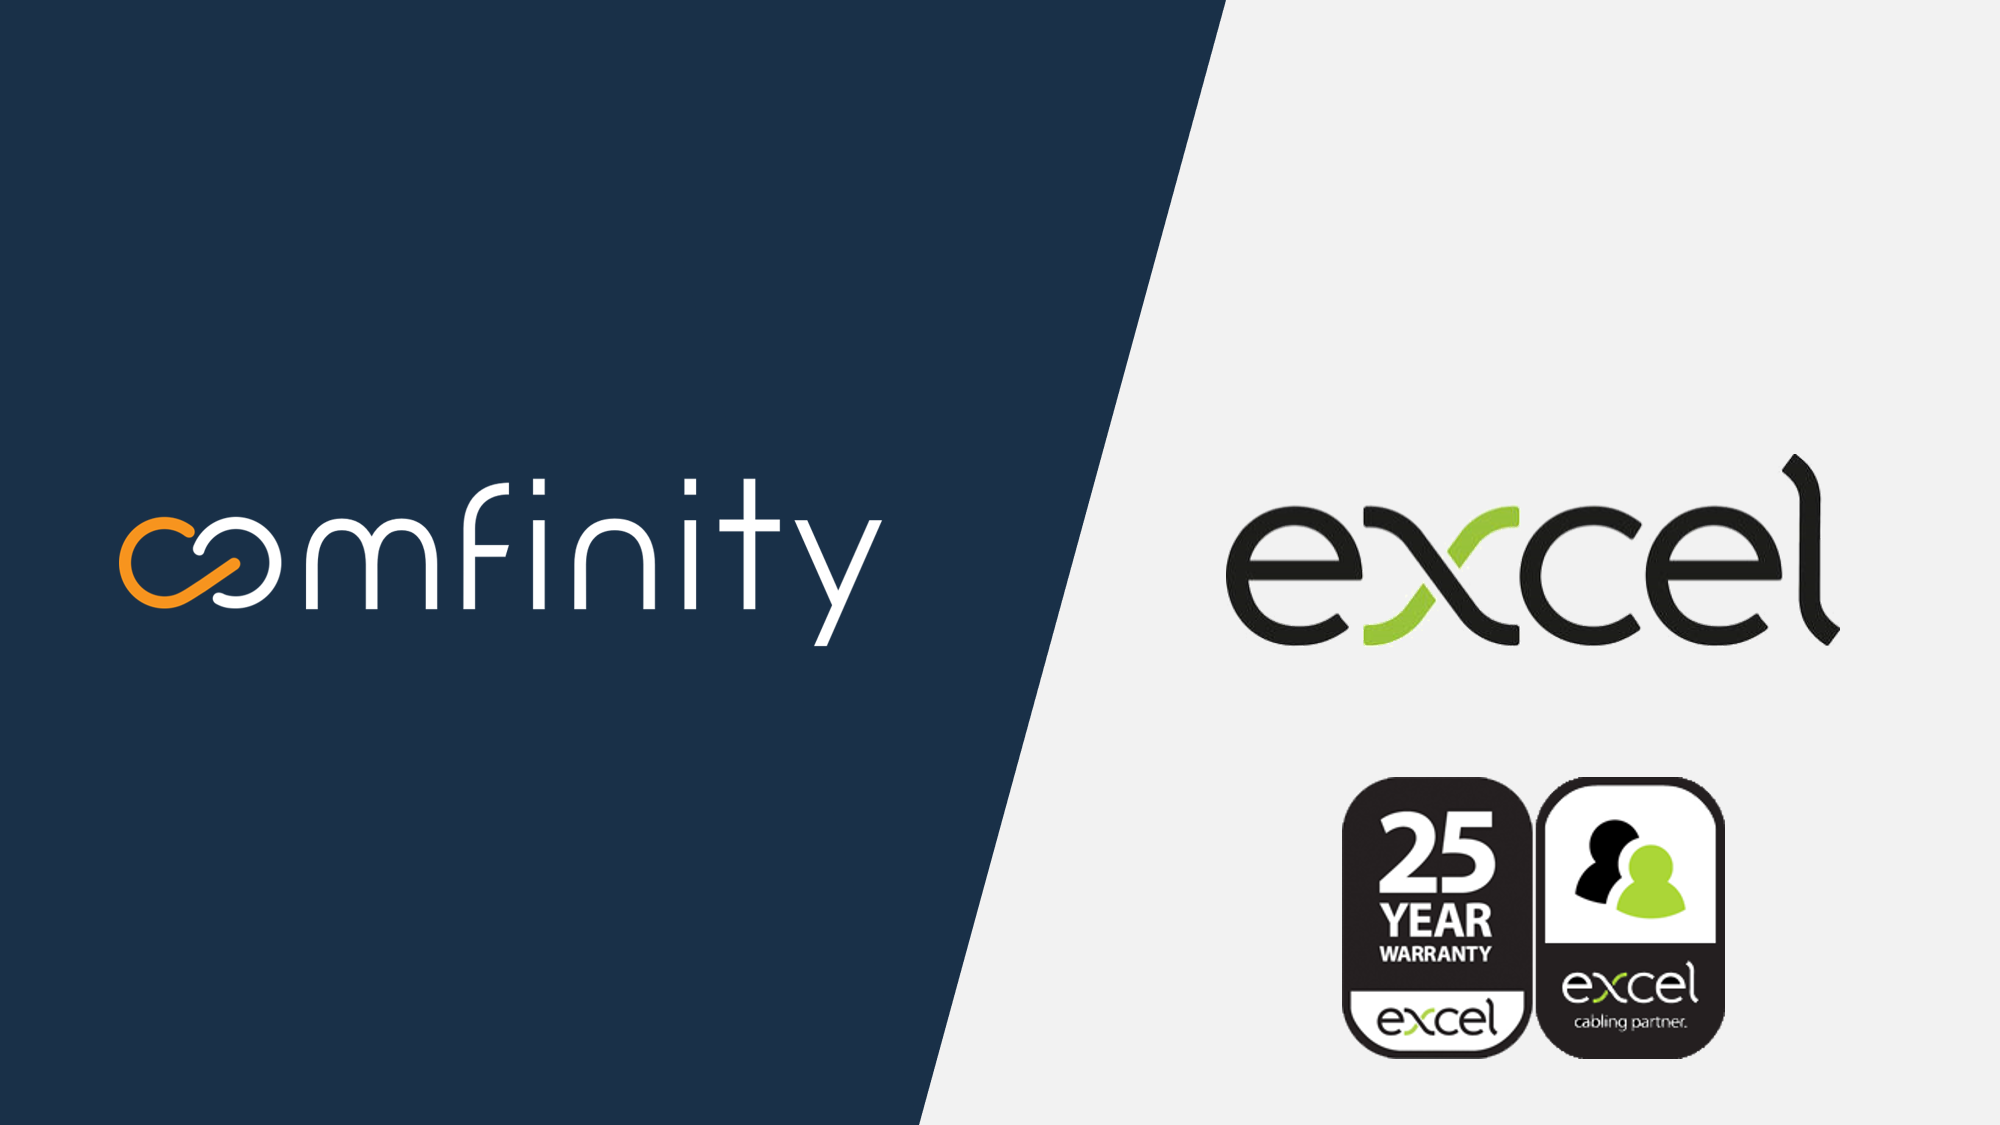 Comfinity receives Excel Cabling Partner (ECP) status